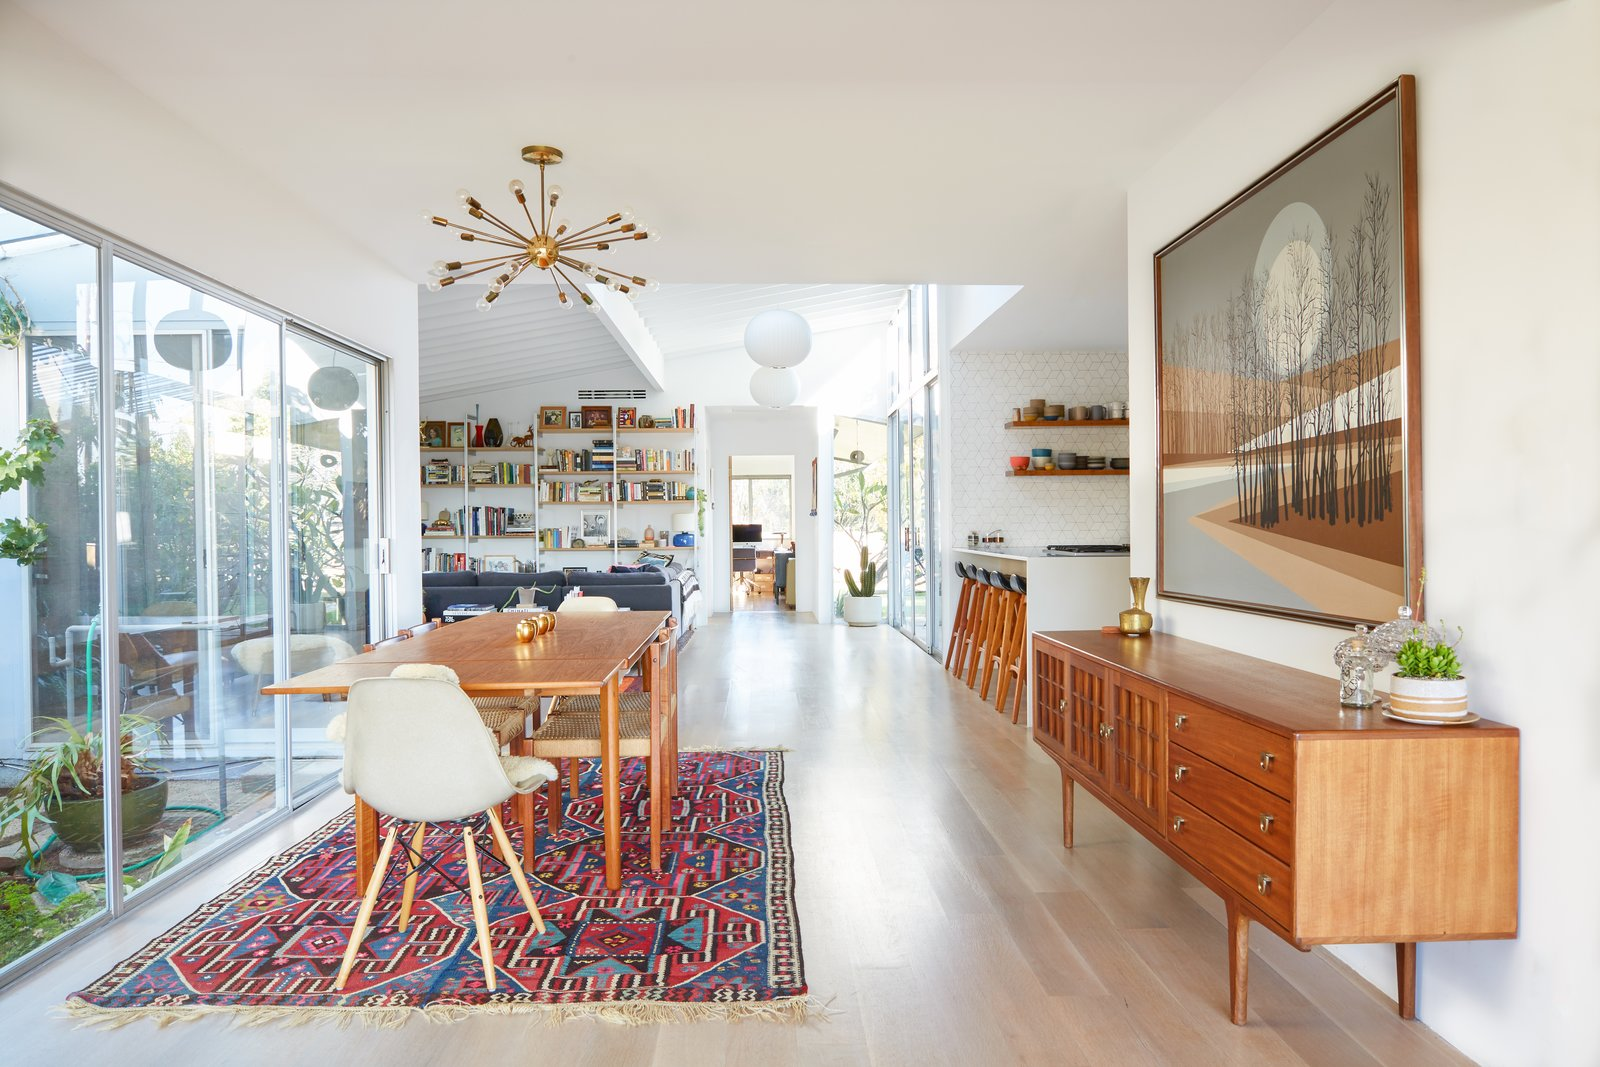 Dining, Chair, Storage, Table, Light Hardwood, Ceiling, and Rug Dining Room Looking into Kitchen and Family Room  Best Dining Light Hardwood Rug Ceiling Table Photos from Midcentury Dream House